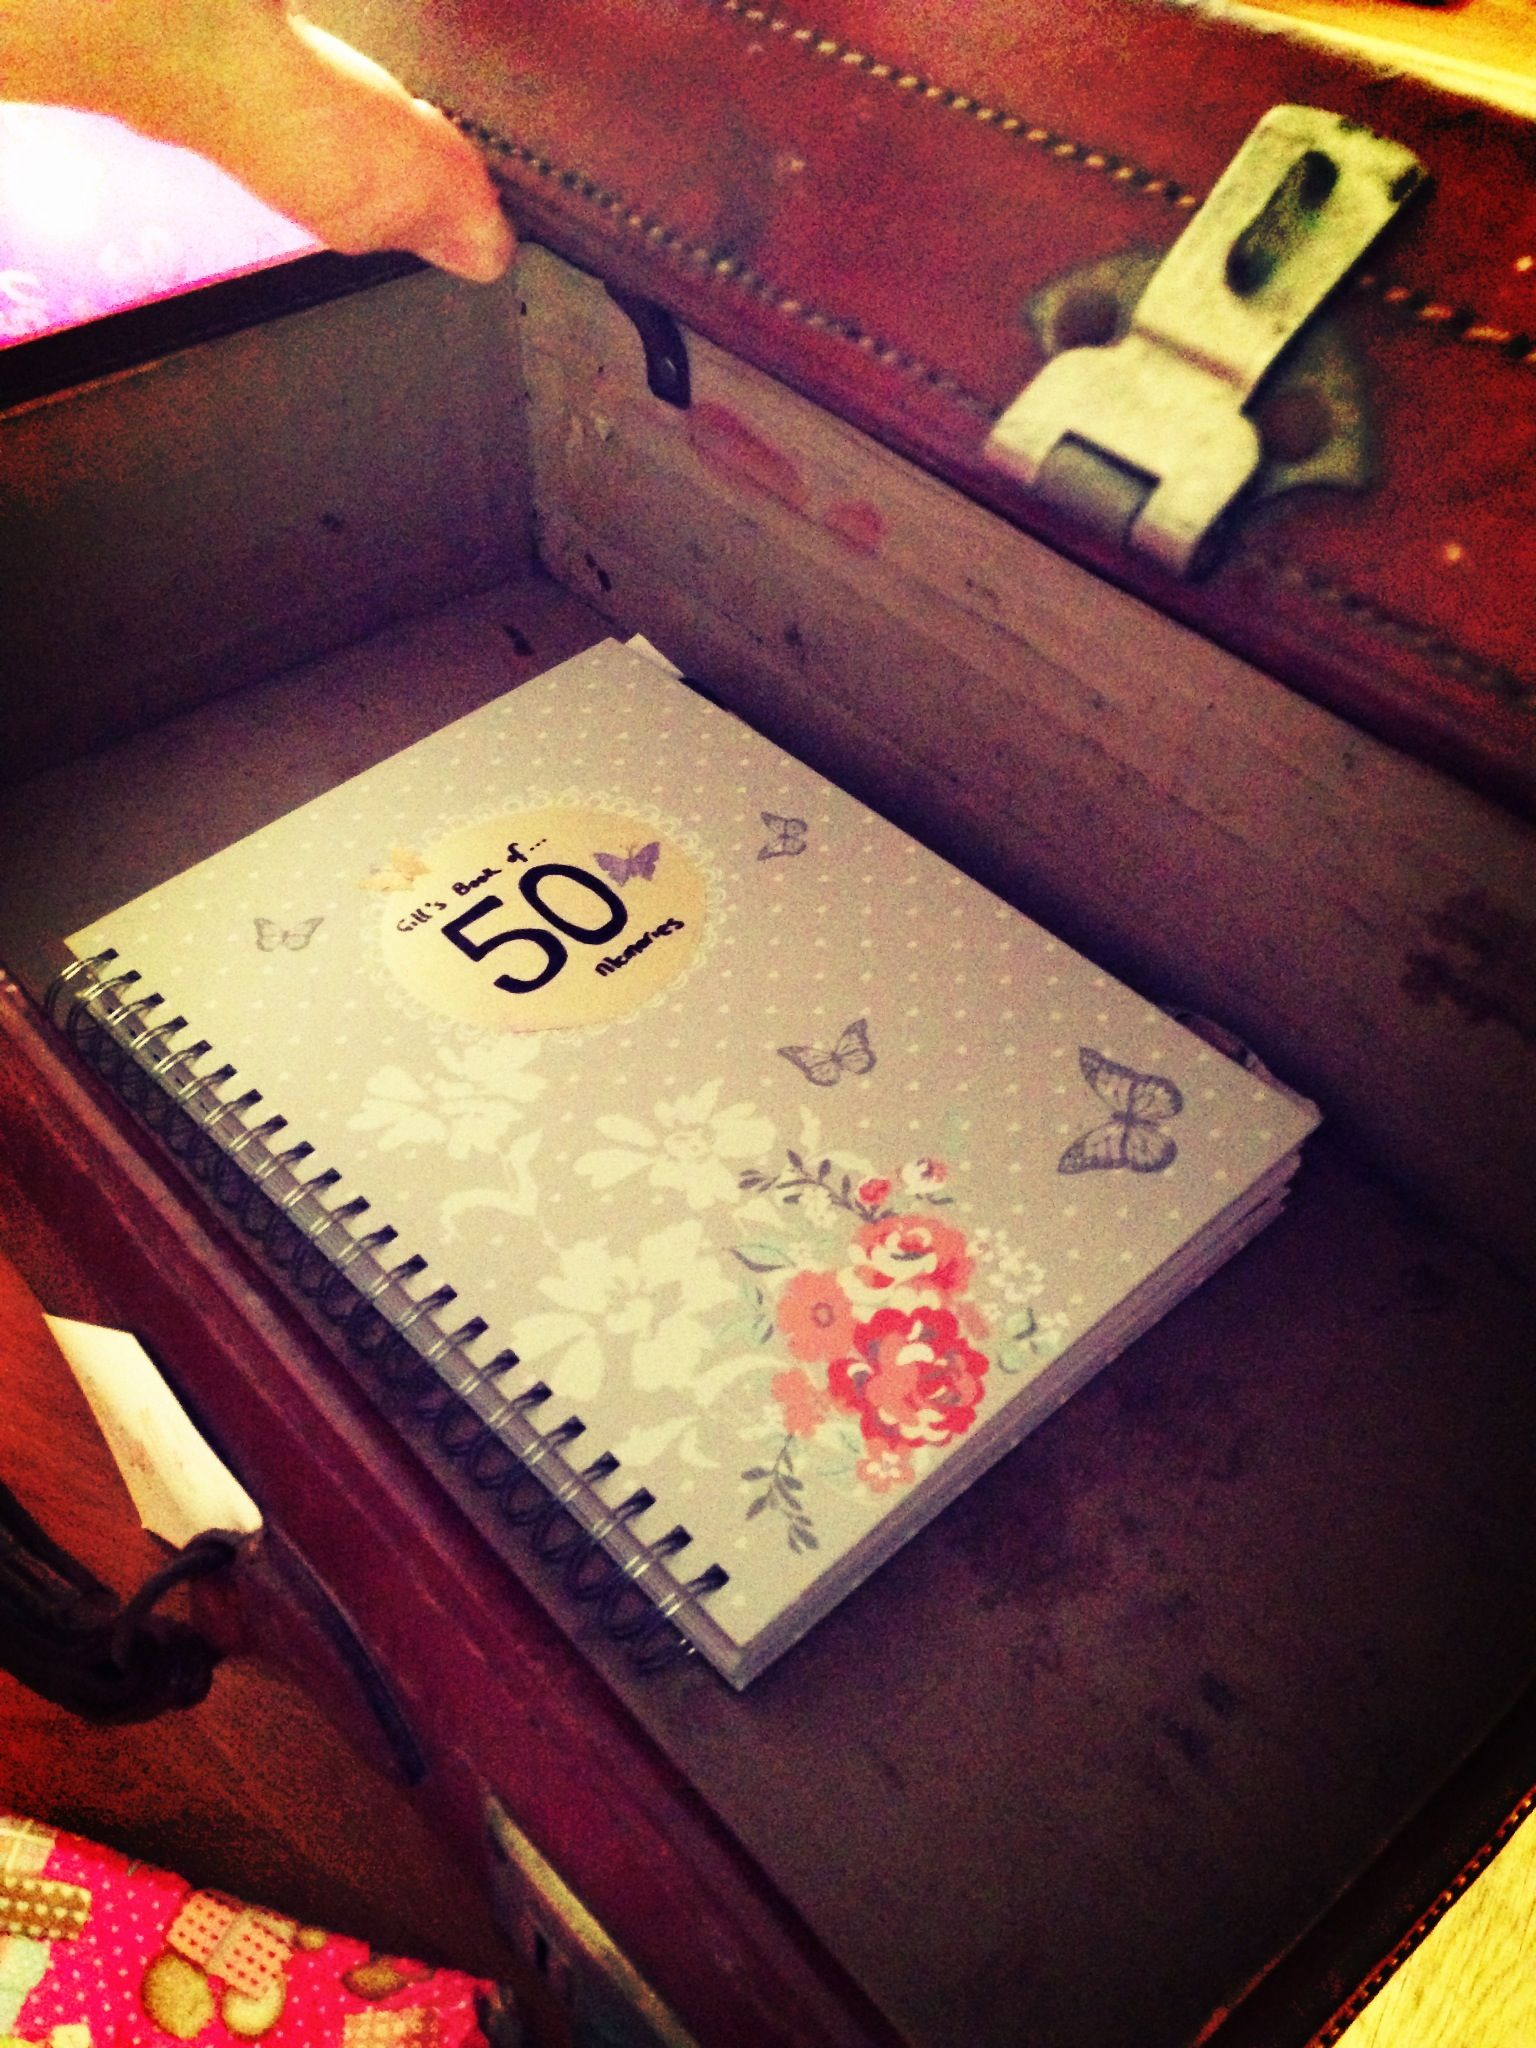 A Vintage Suitcase Holding Book Of 50 Memories For My Mother In Laws 50th BirthdayGood Gift Him To Give Her